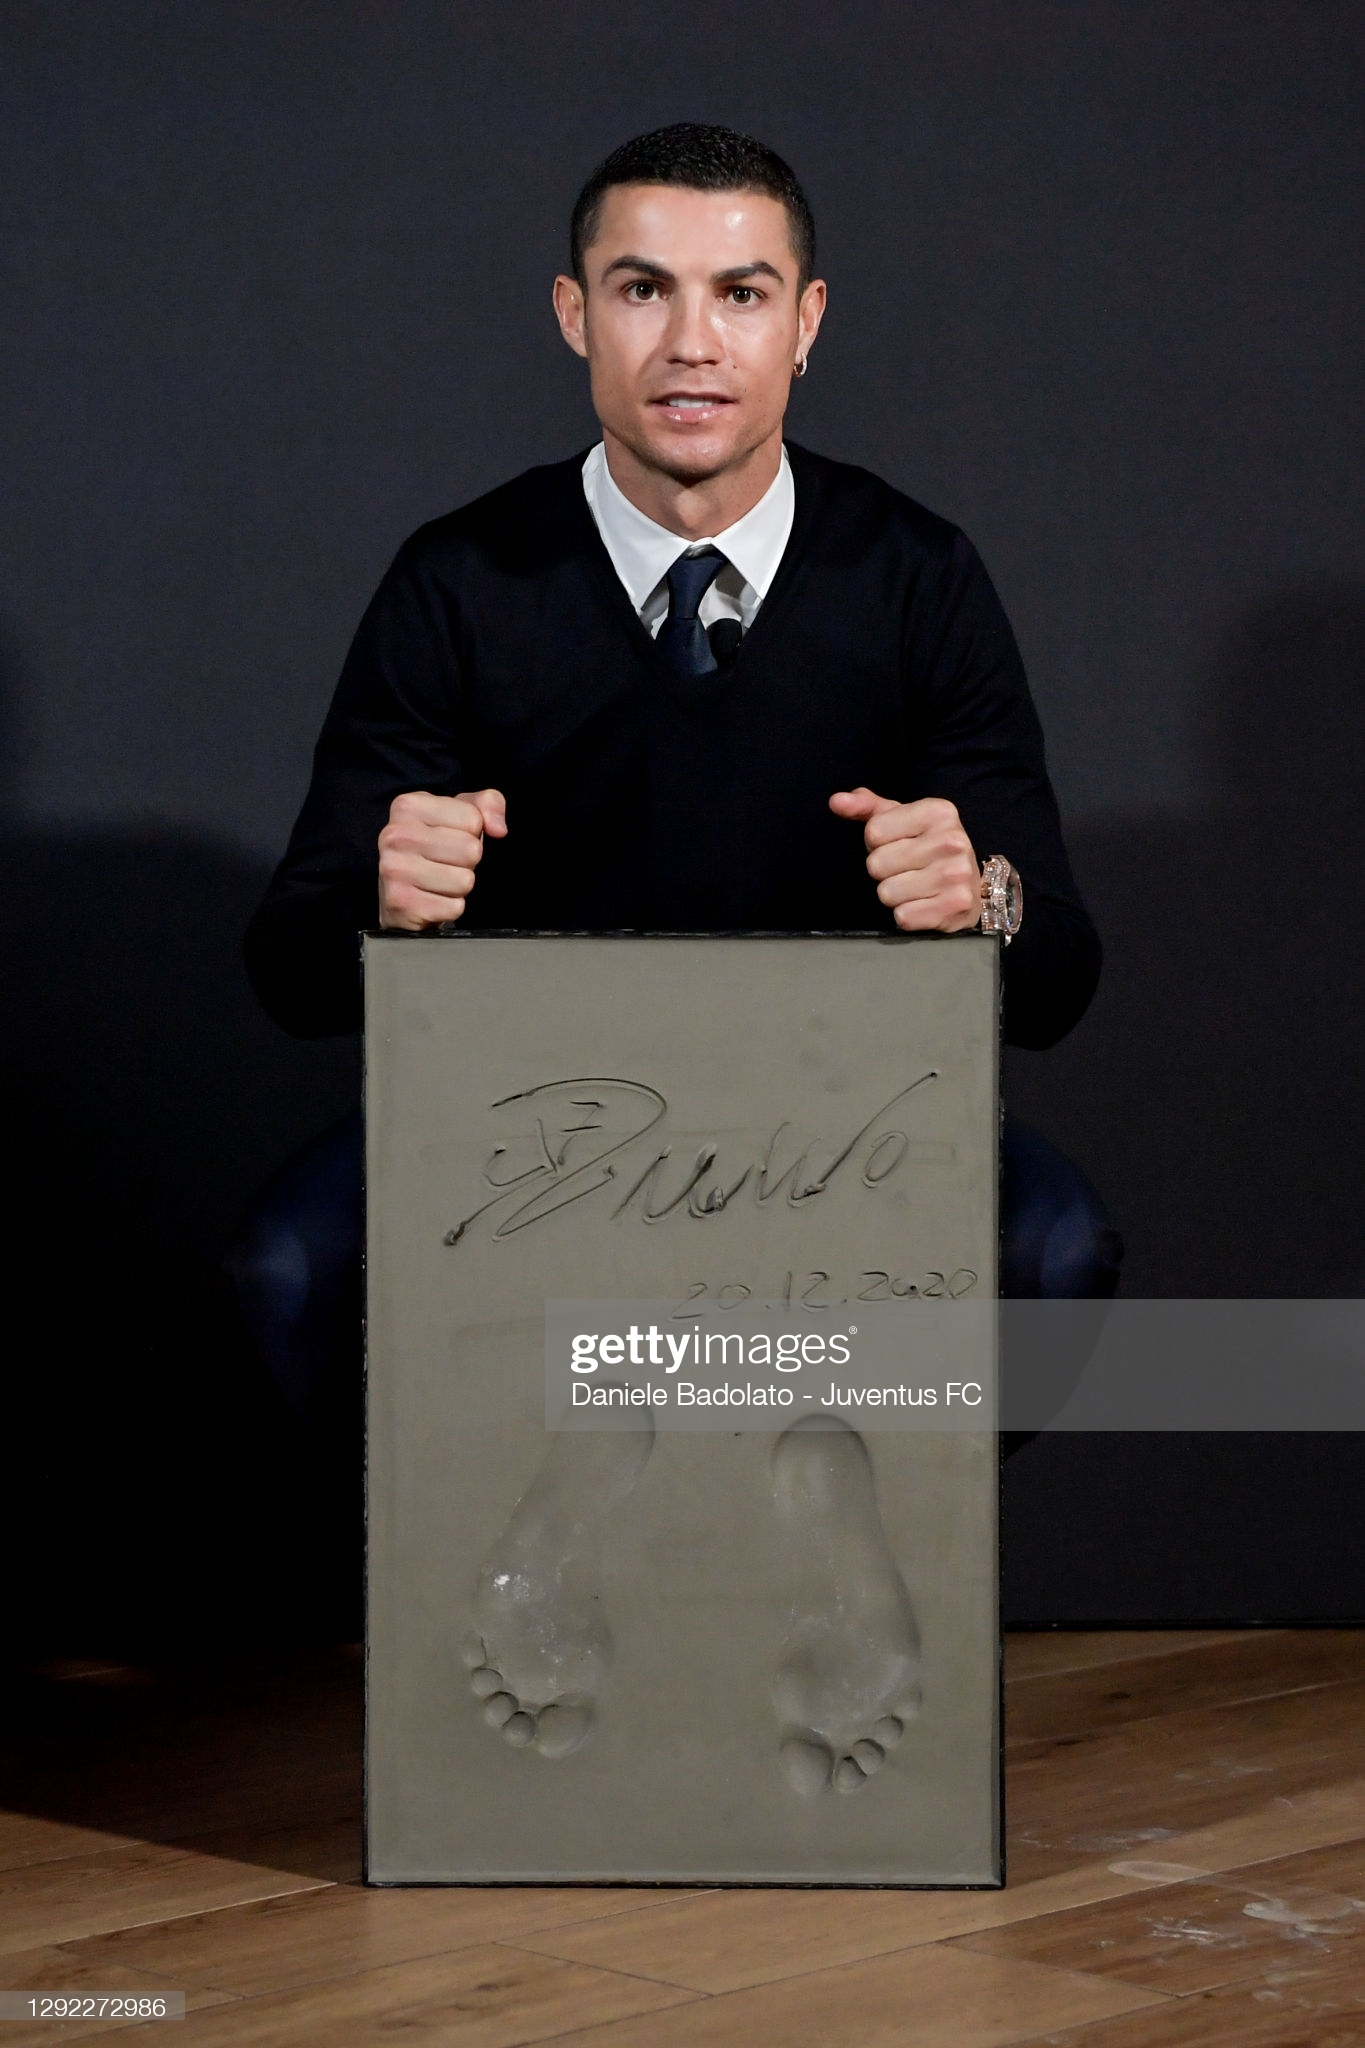 gettyimages-1292272986-2048x2048